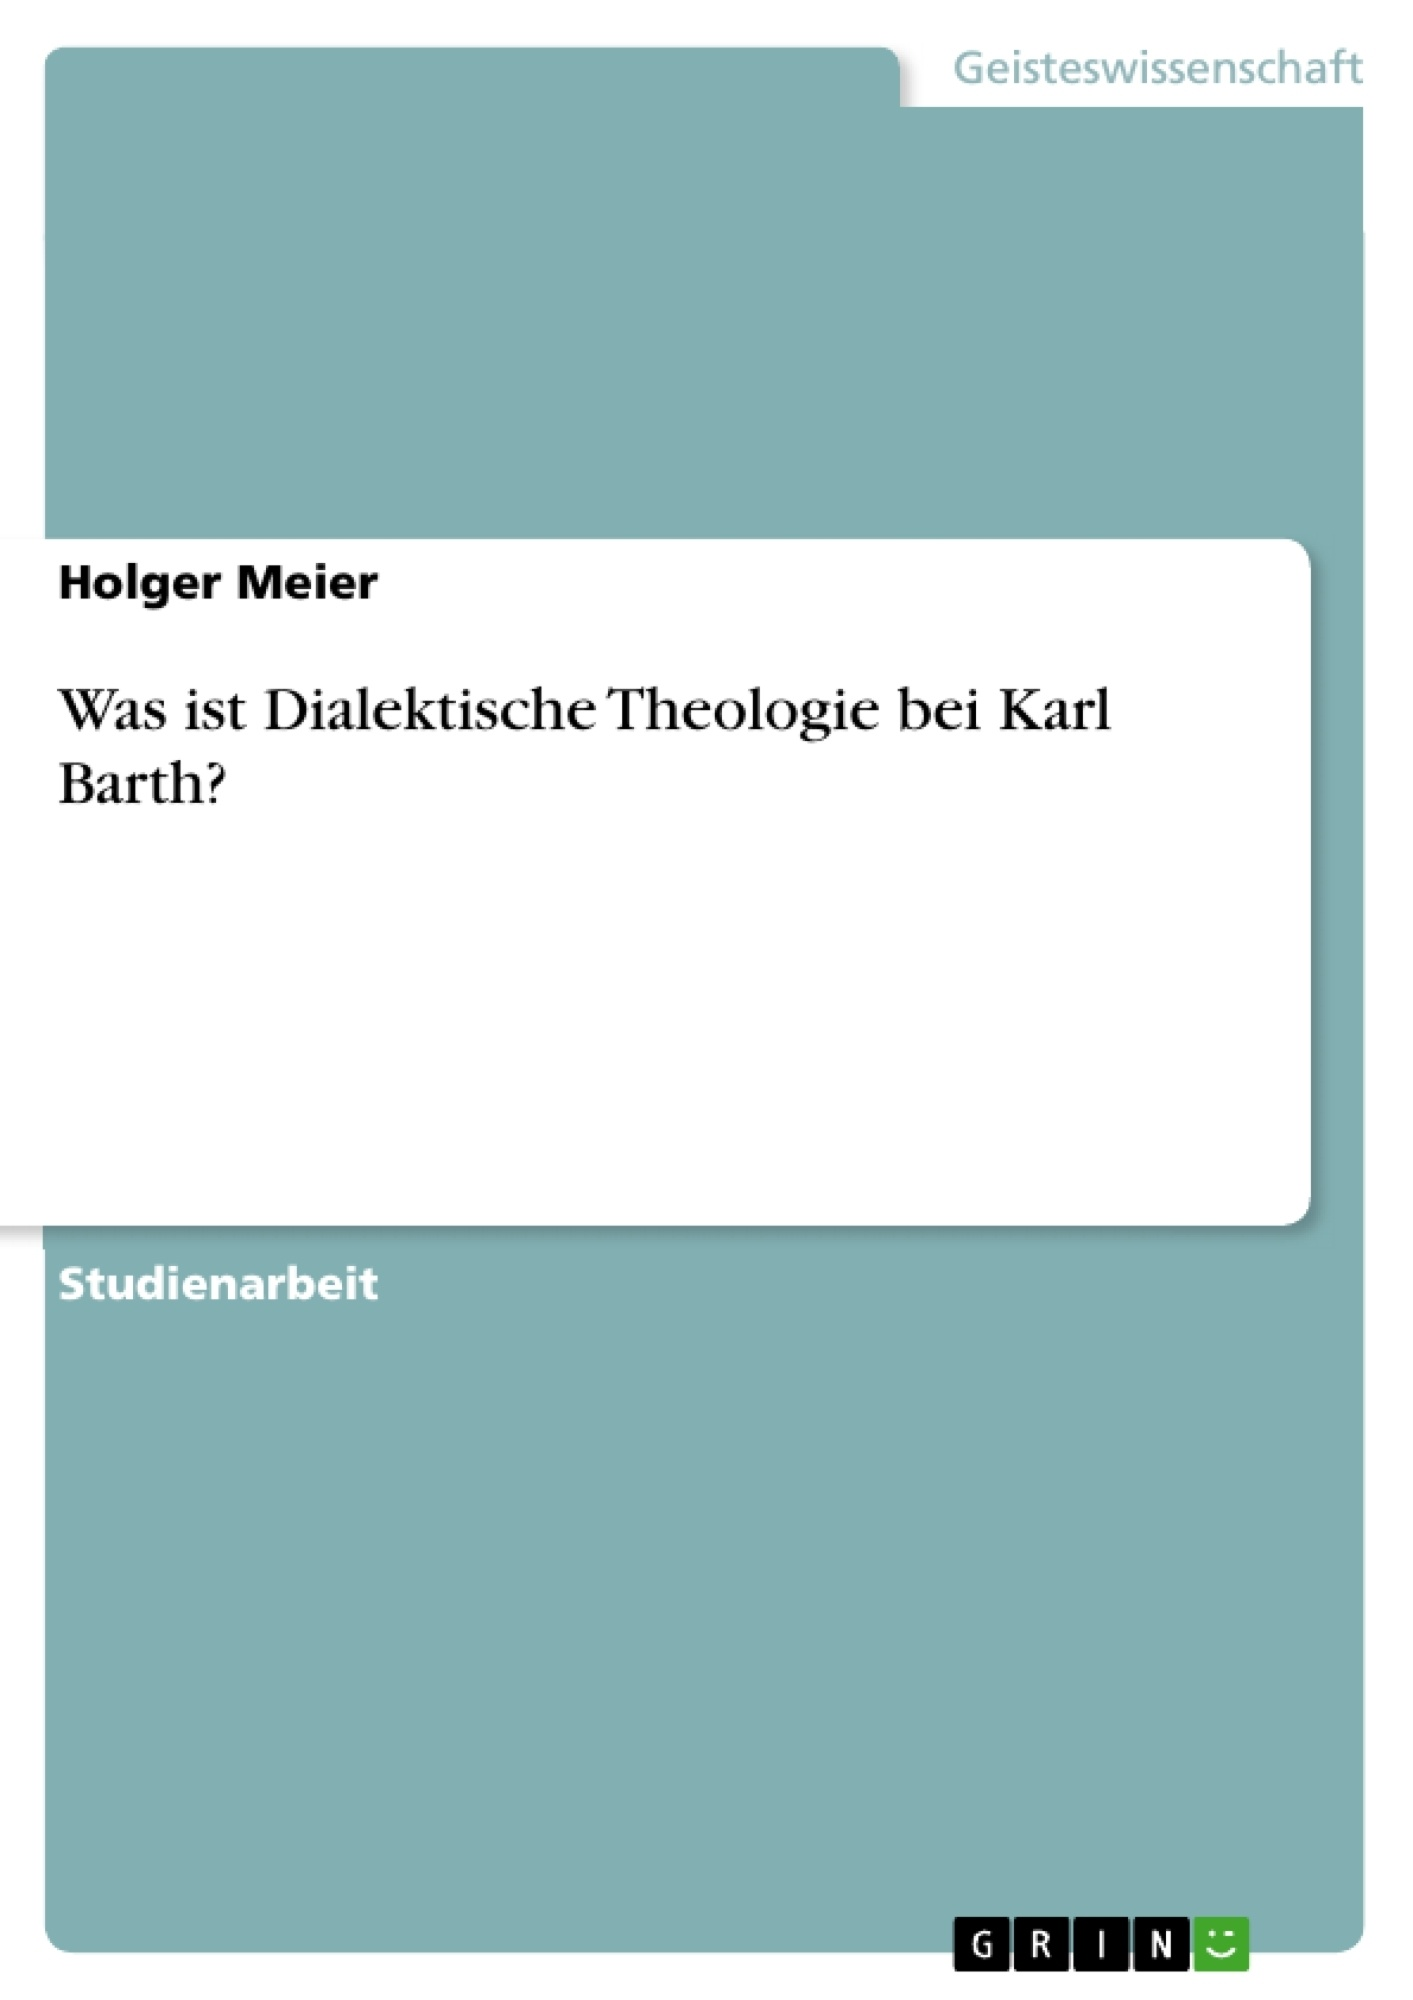 """karl barth term paper 2016-7-6 karl barth, church dogmatics, volume iv barth,  covenant is the term for basic relationship  and then put it down on paper hastily the next morning"""" (barth."""